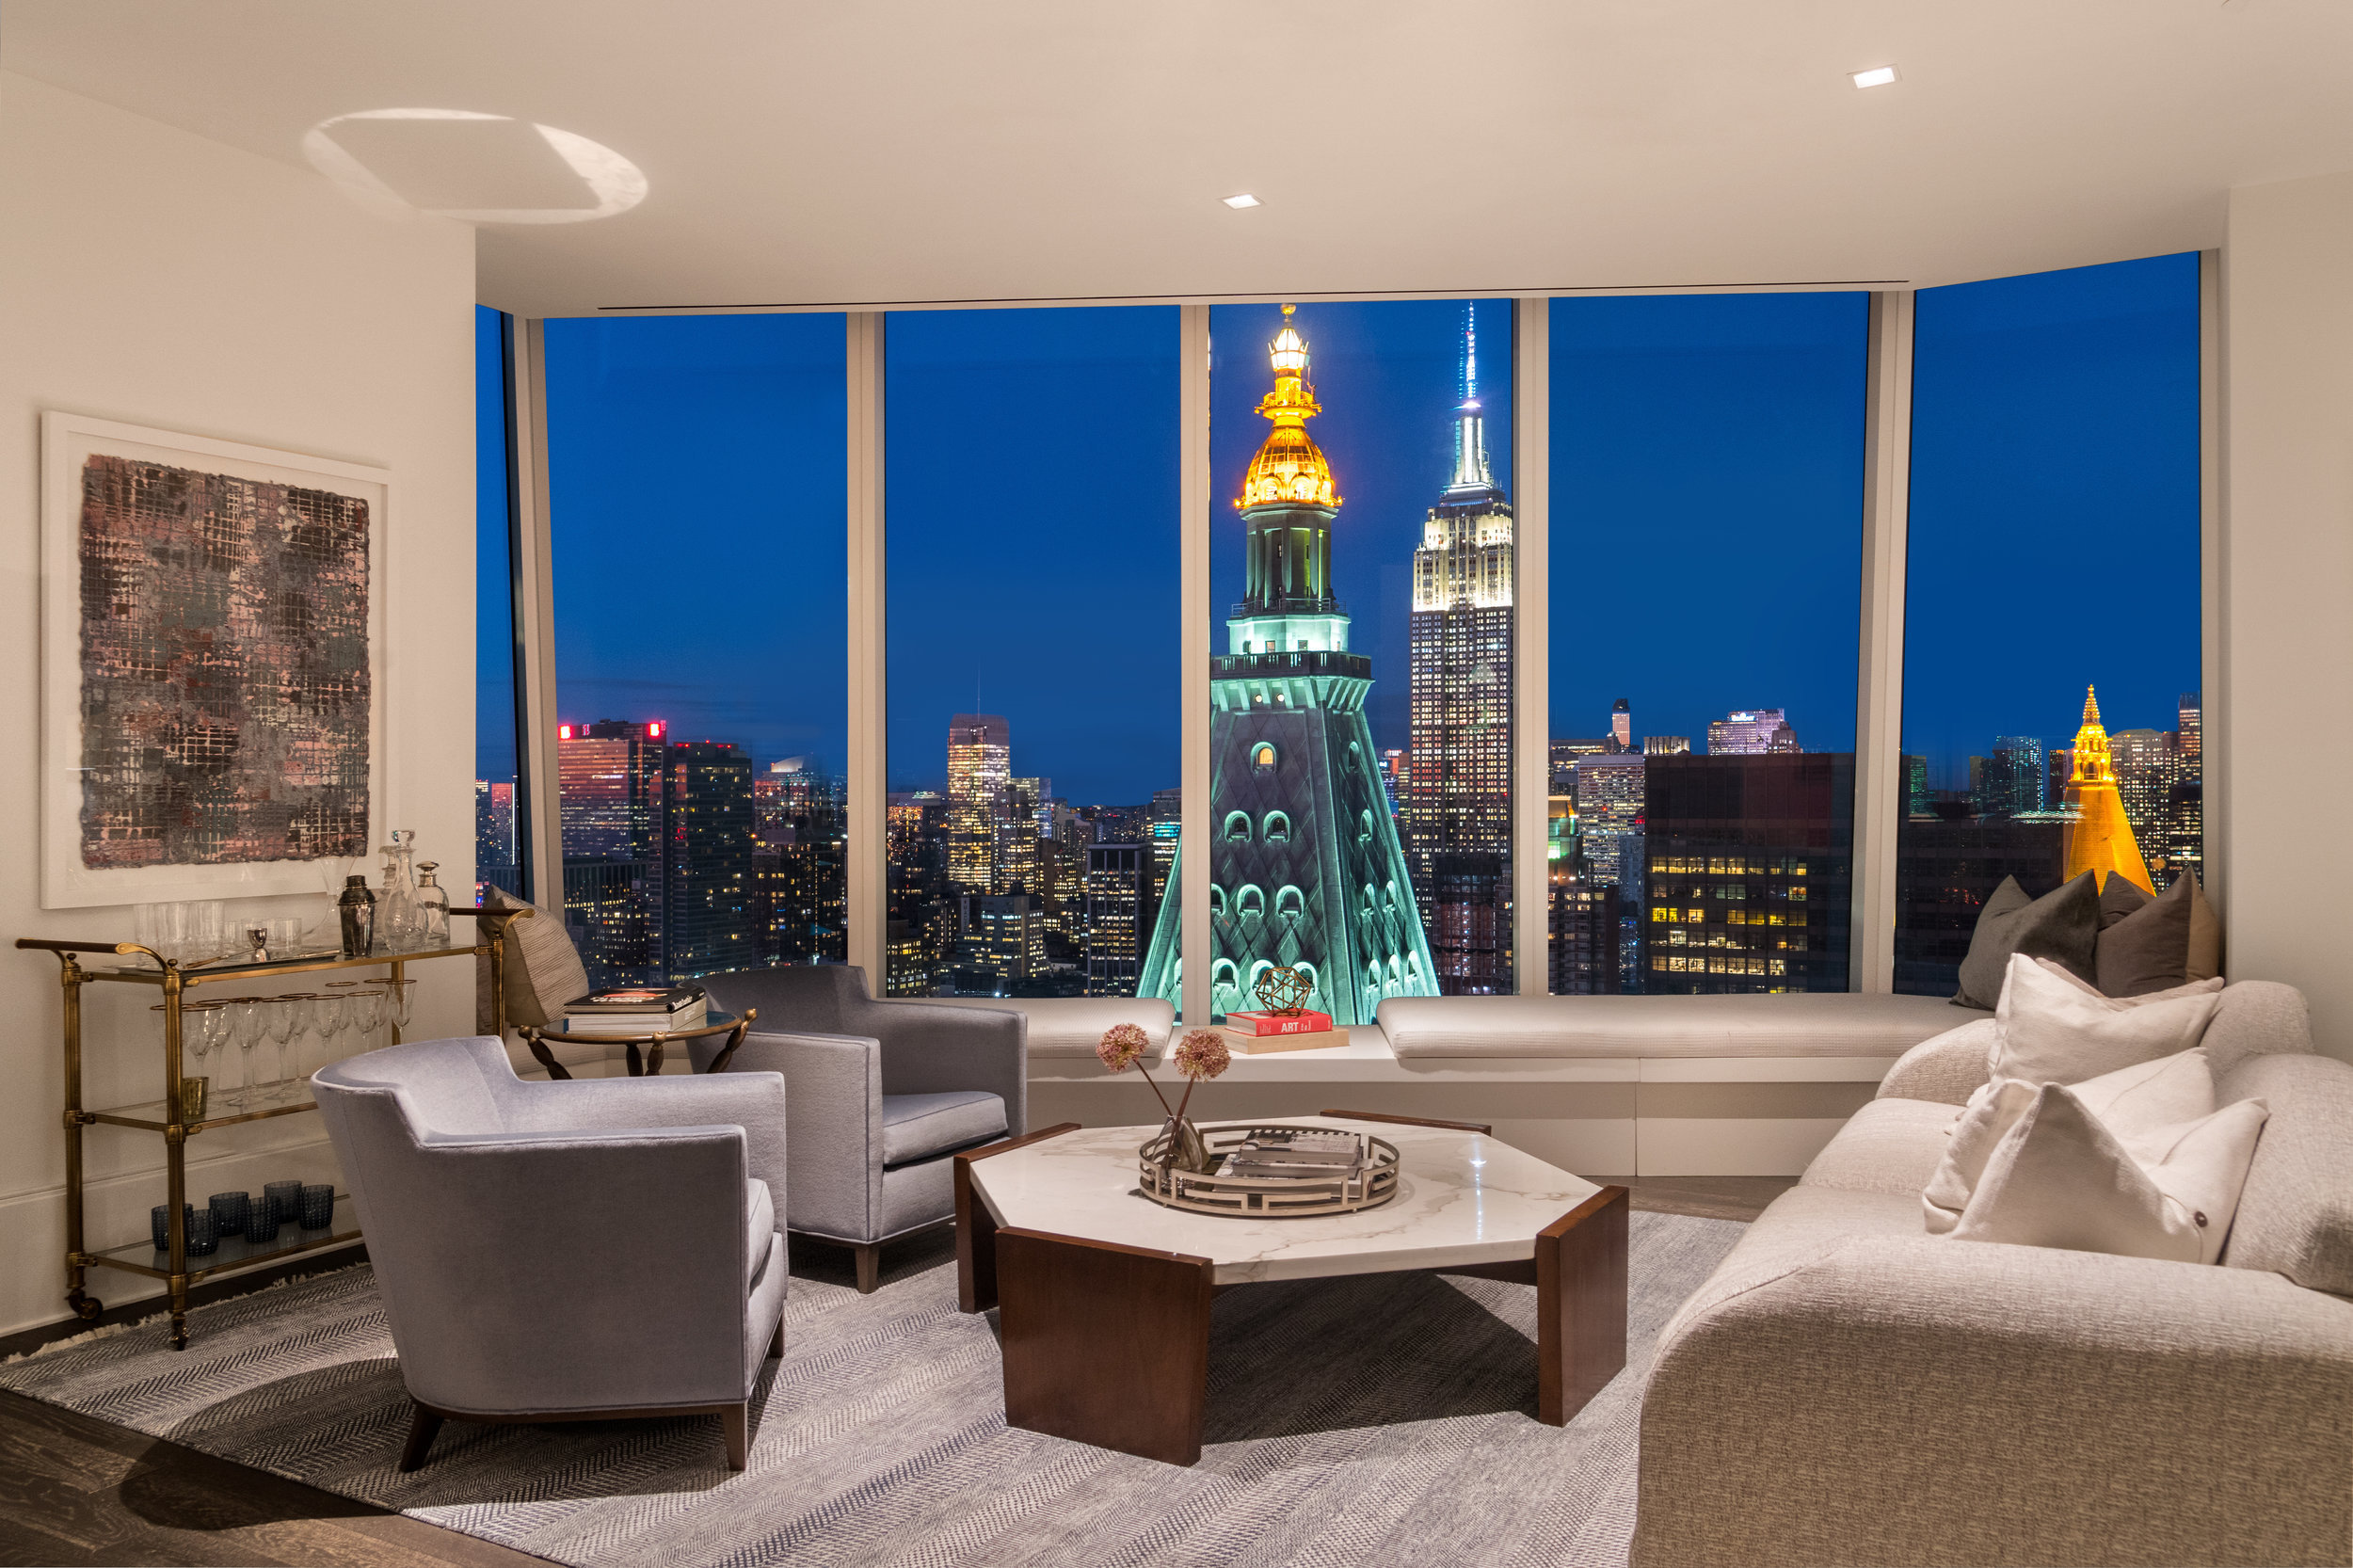 Madison Square Park Tower Reveals FIFTYFOUR, Their 54th Floor Private Resident's Lounge Designed by Martin Brudnizki Design Studio